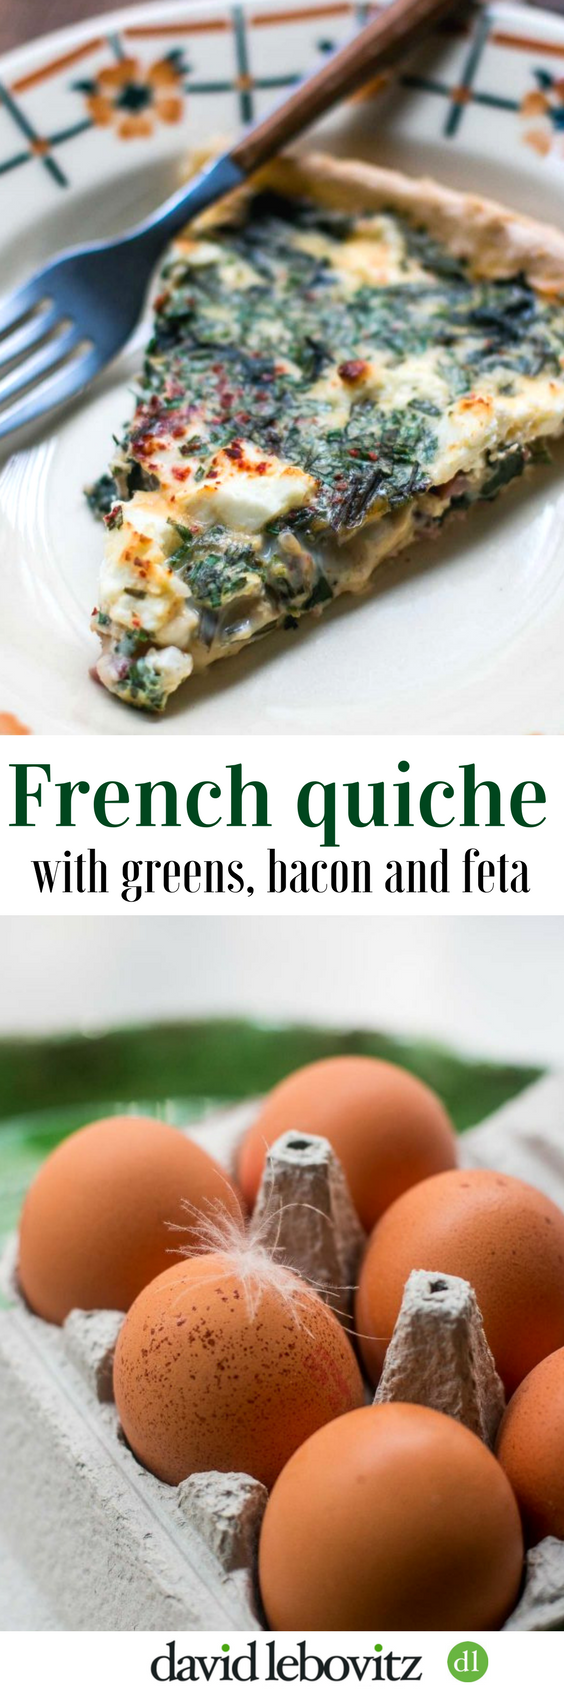 A French quiche recipe with greens, bacon and feta, bursting with flavor!